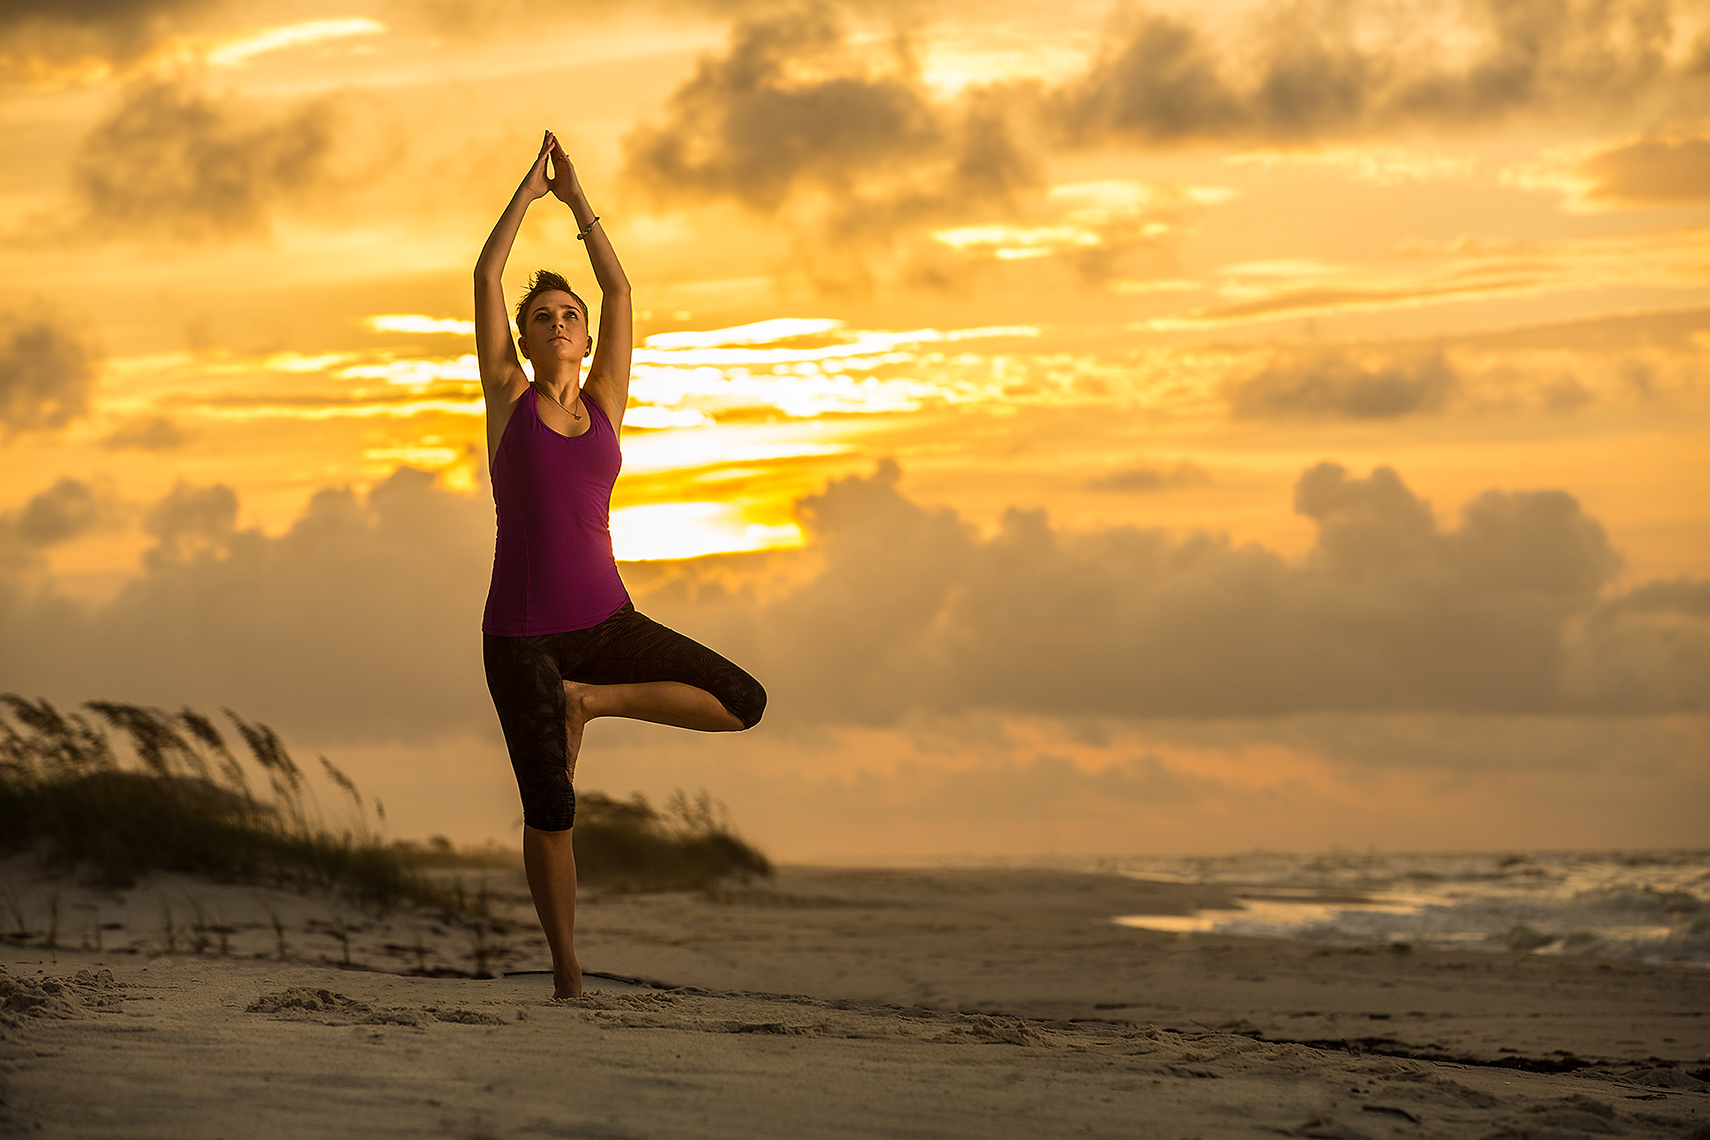 Beach-Yoga-Sunrise